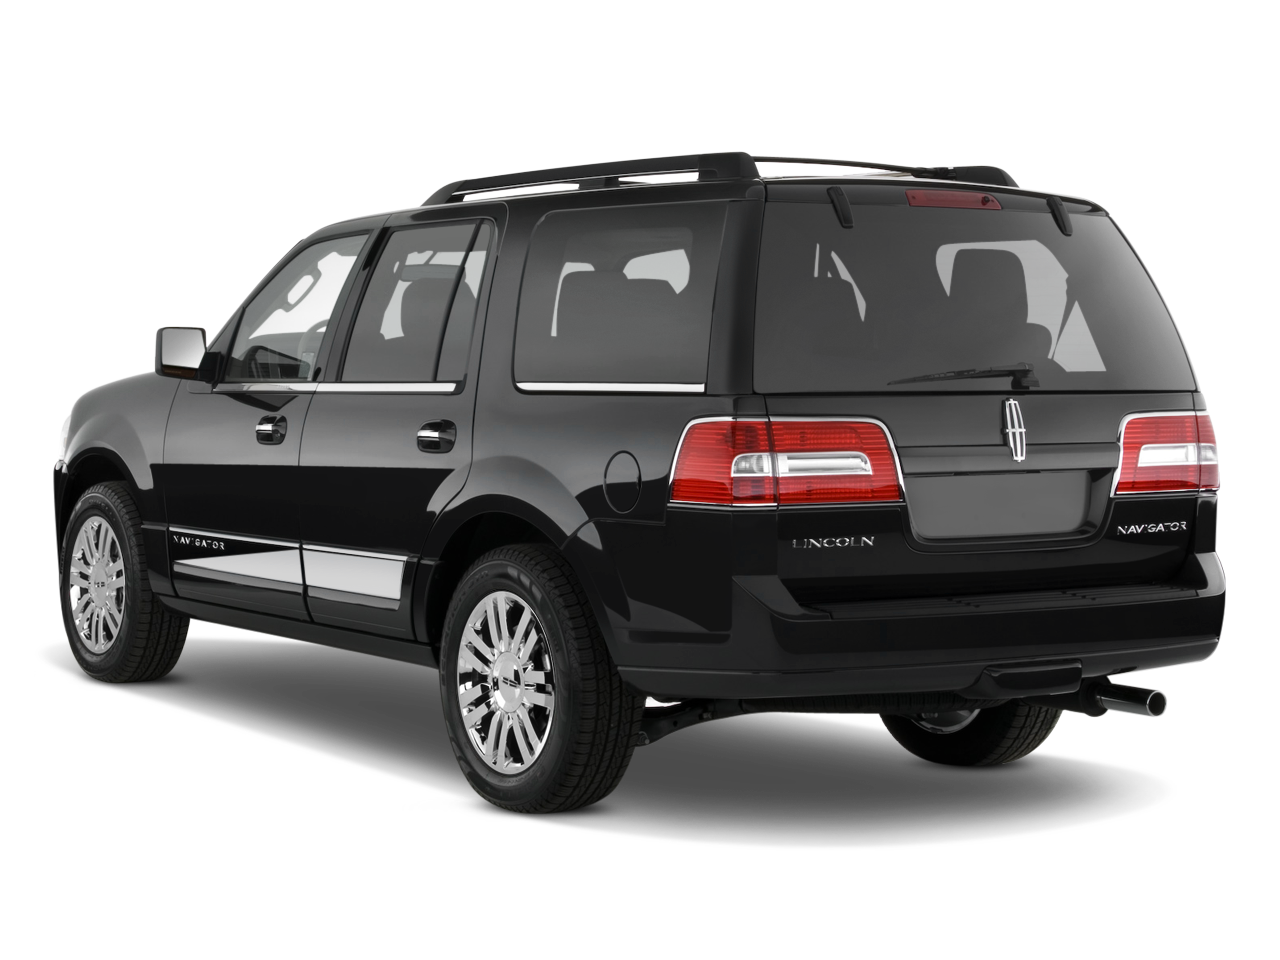 2008 Lincoln Navigator Latest News Features And